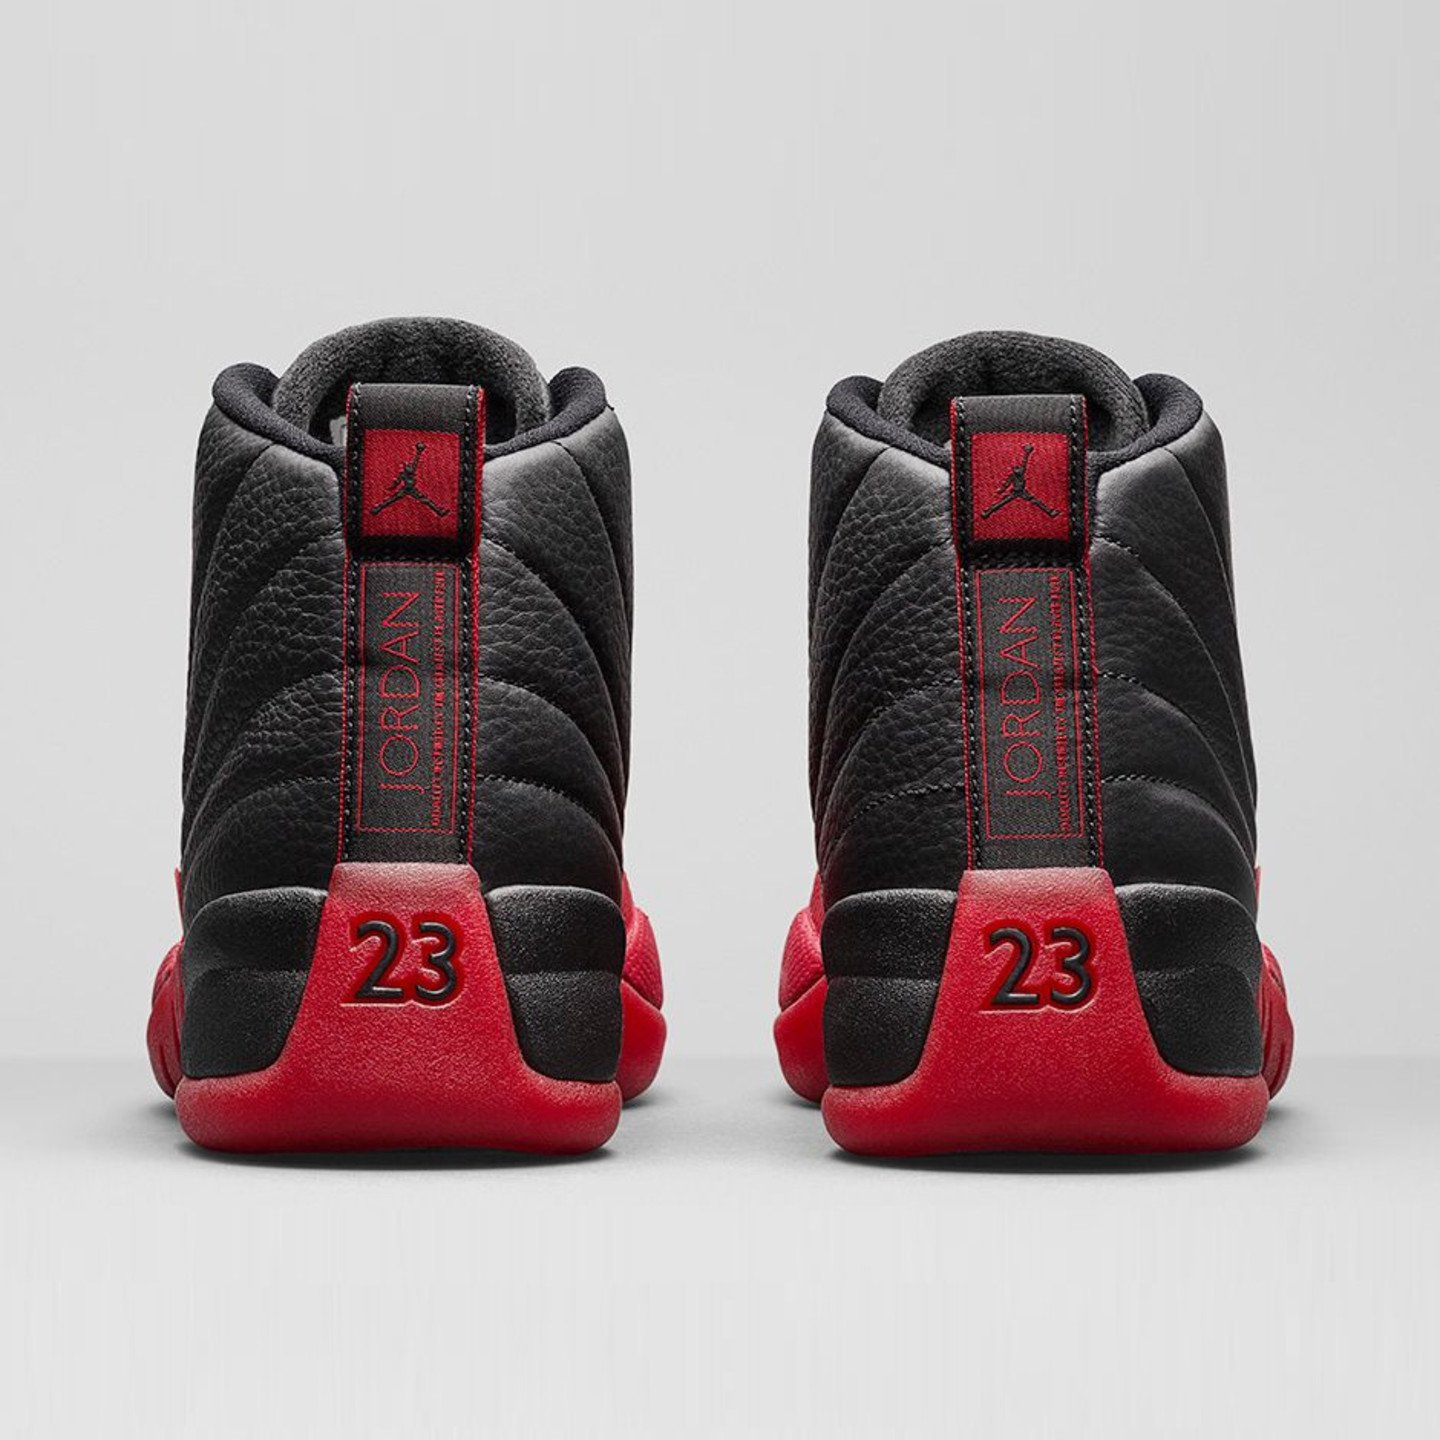 Jordan Air Jordan 12 Retro 'Flu Game' Black / Varsity Red 130690-002-44